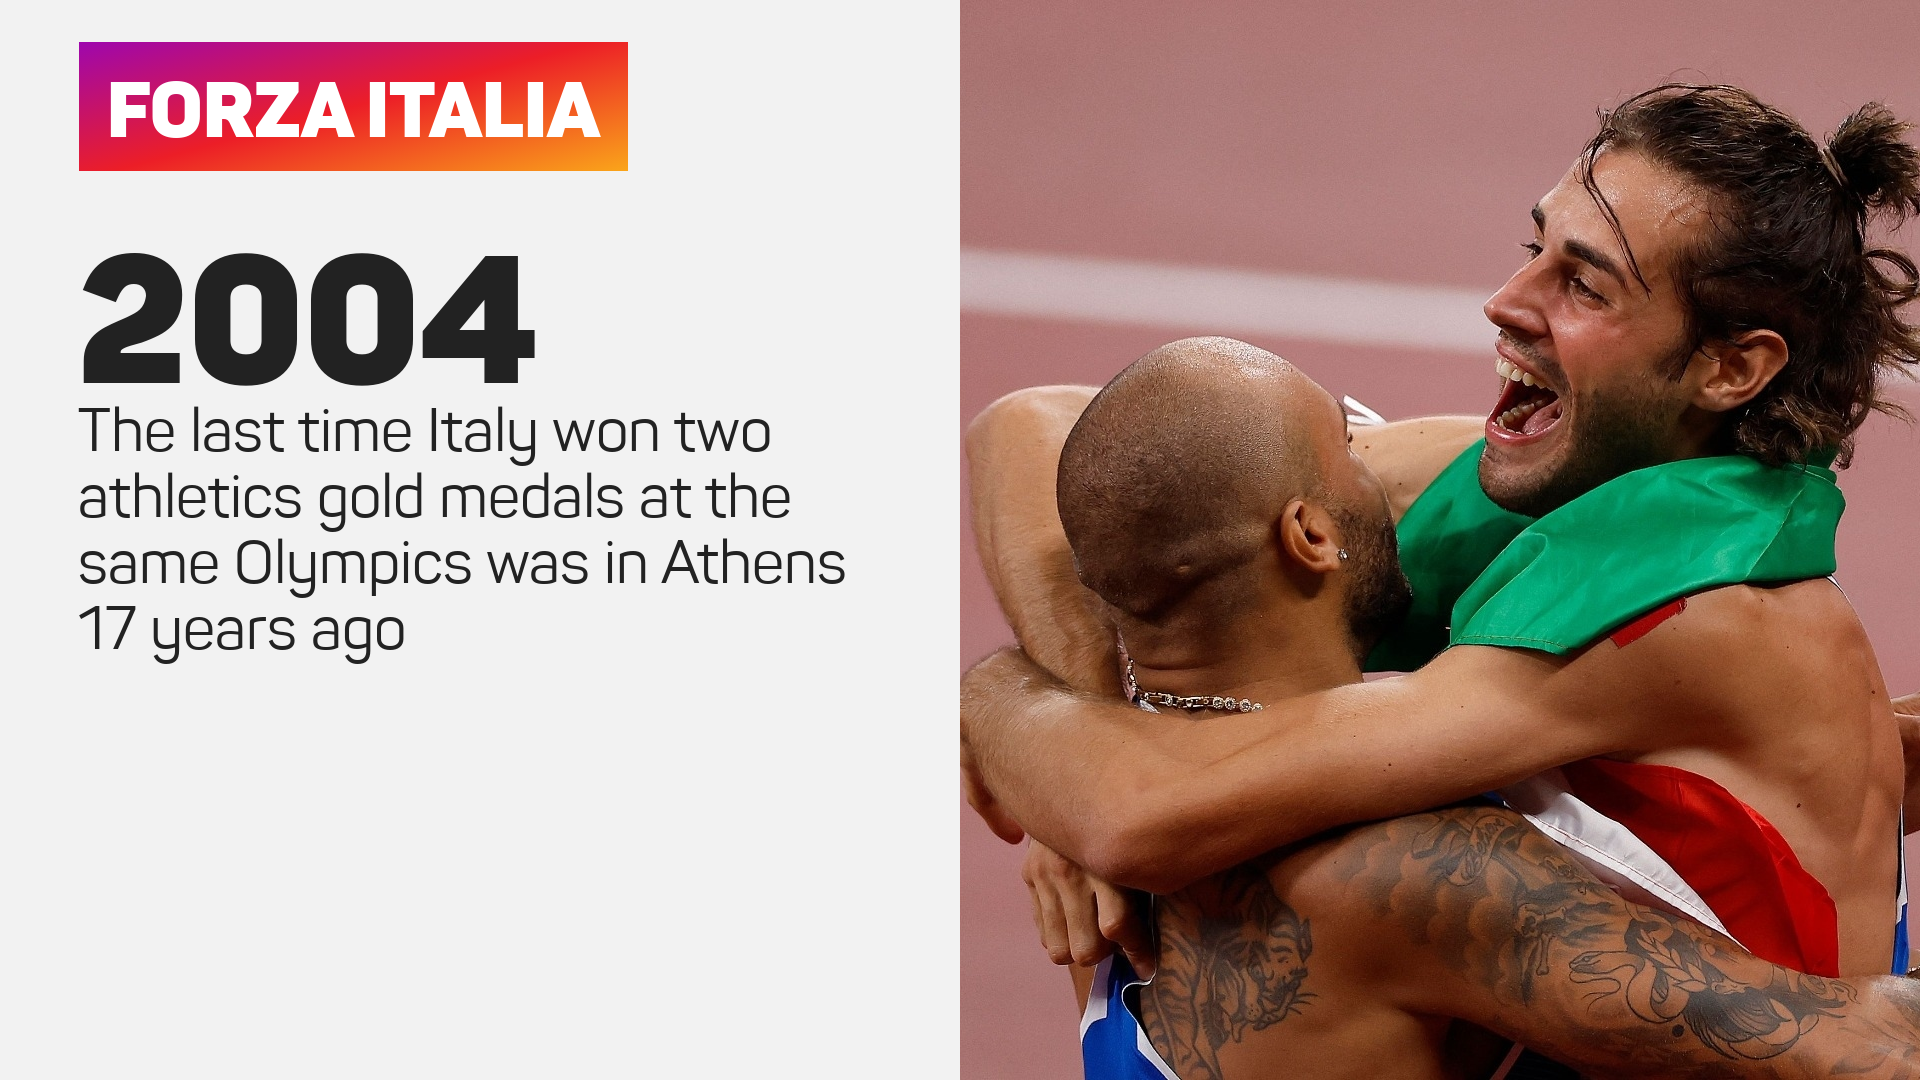 Italy two golds